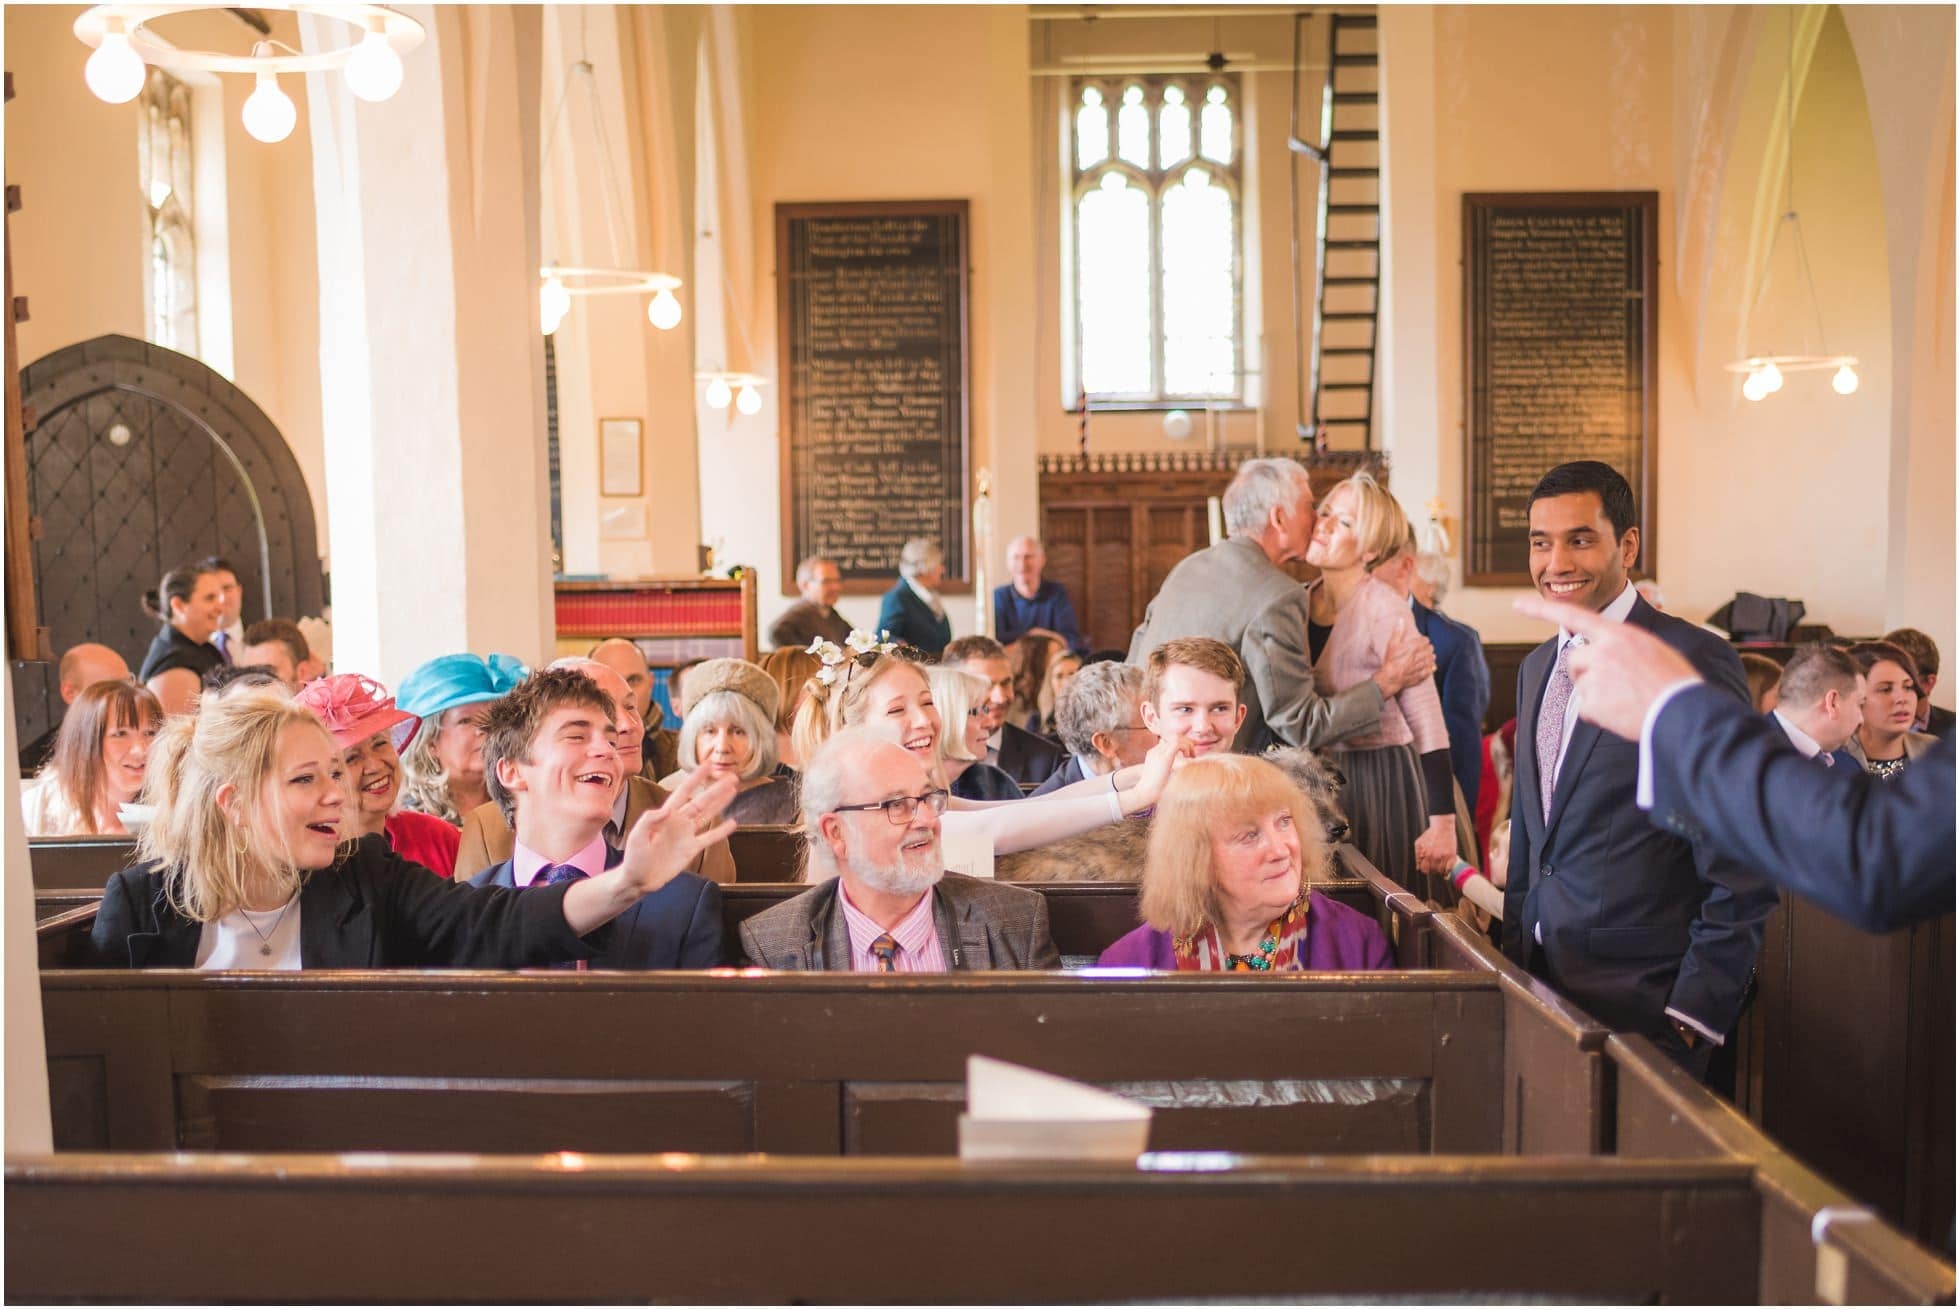 The guests waiting in the church